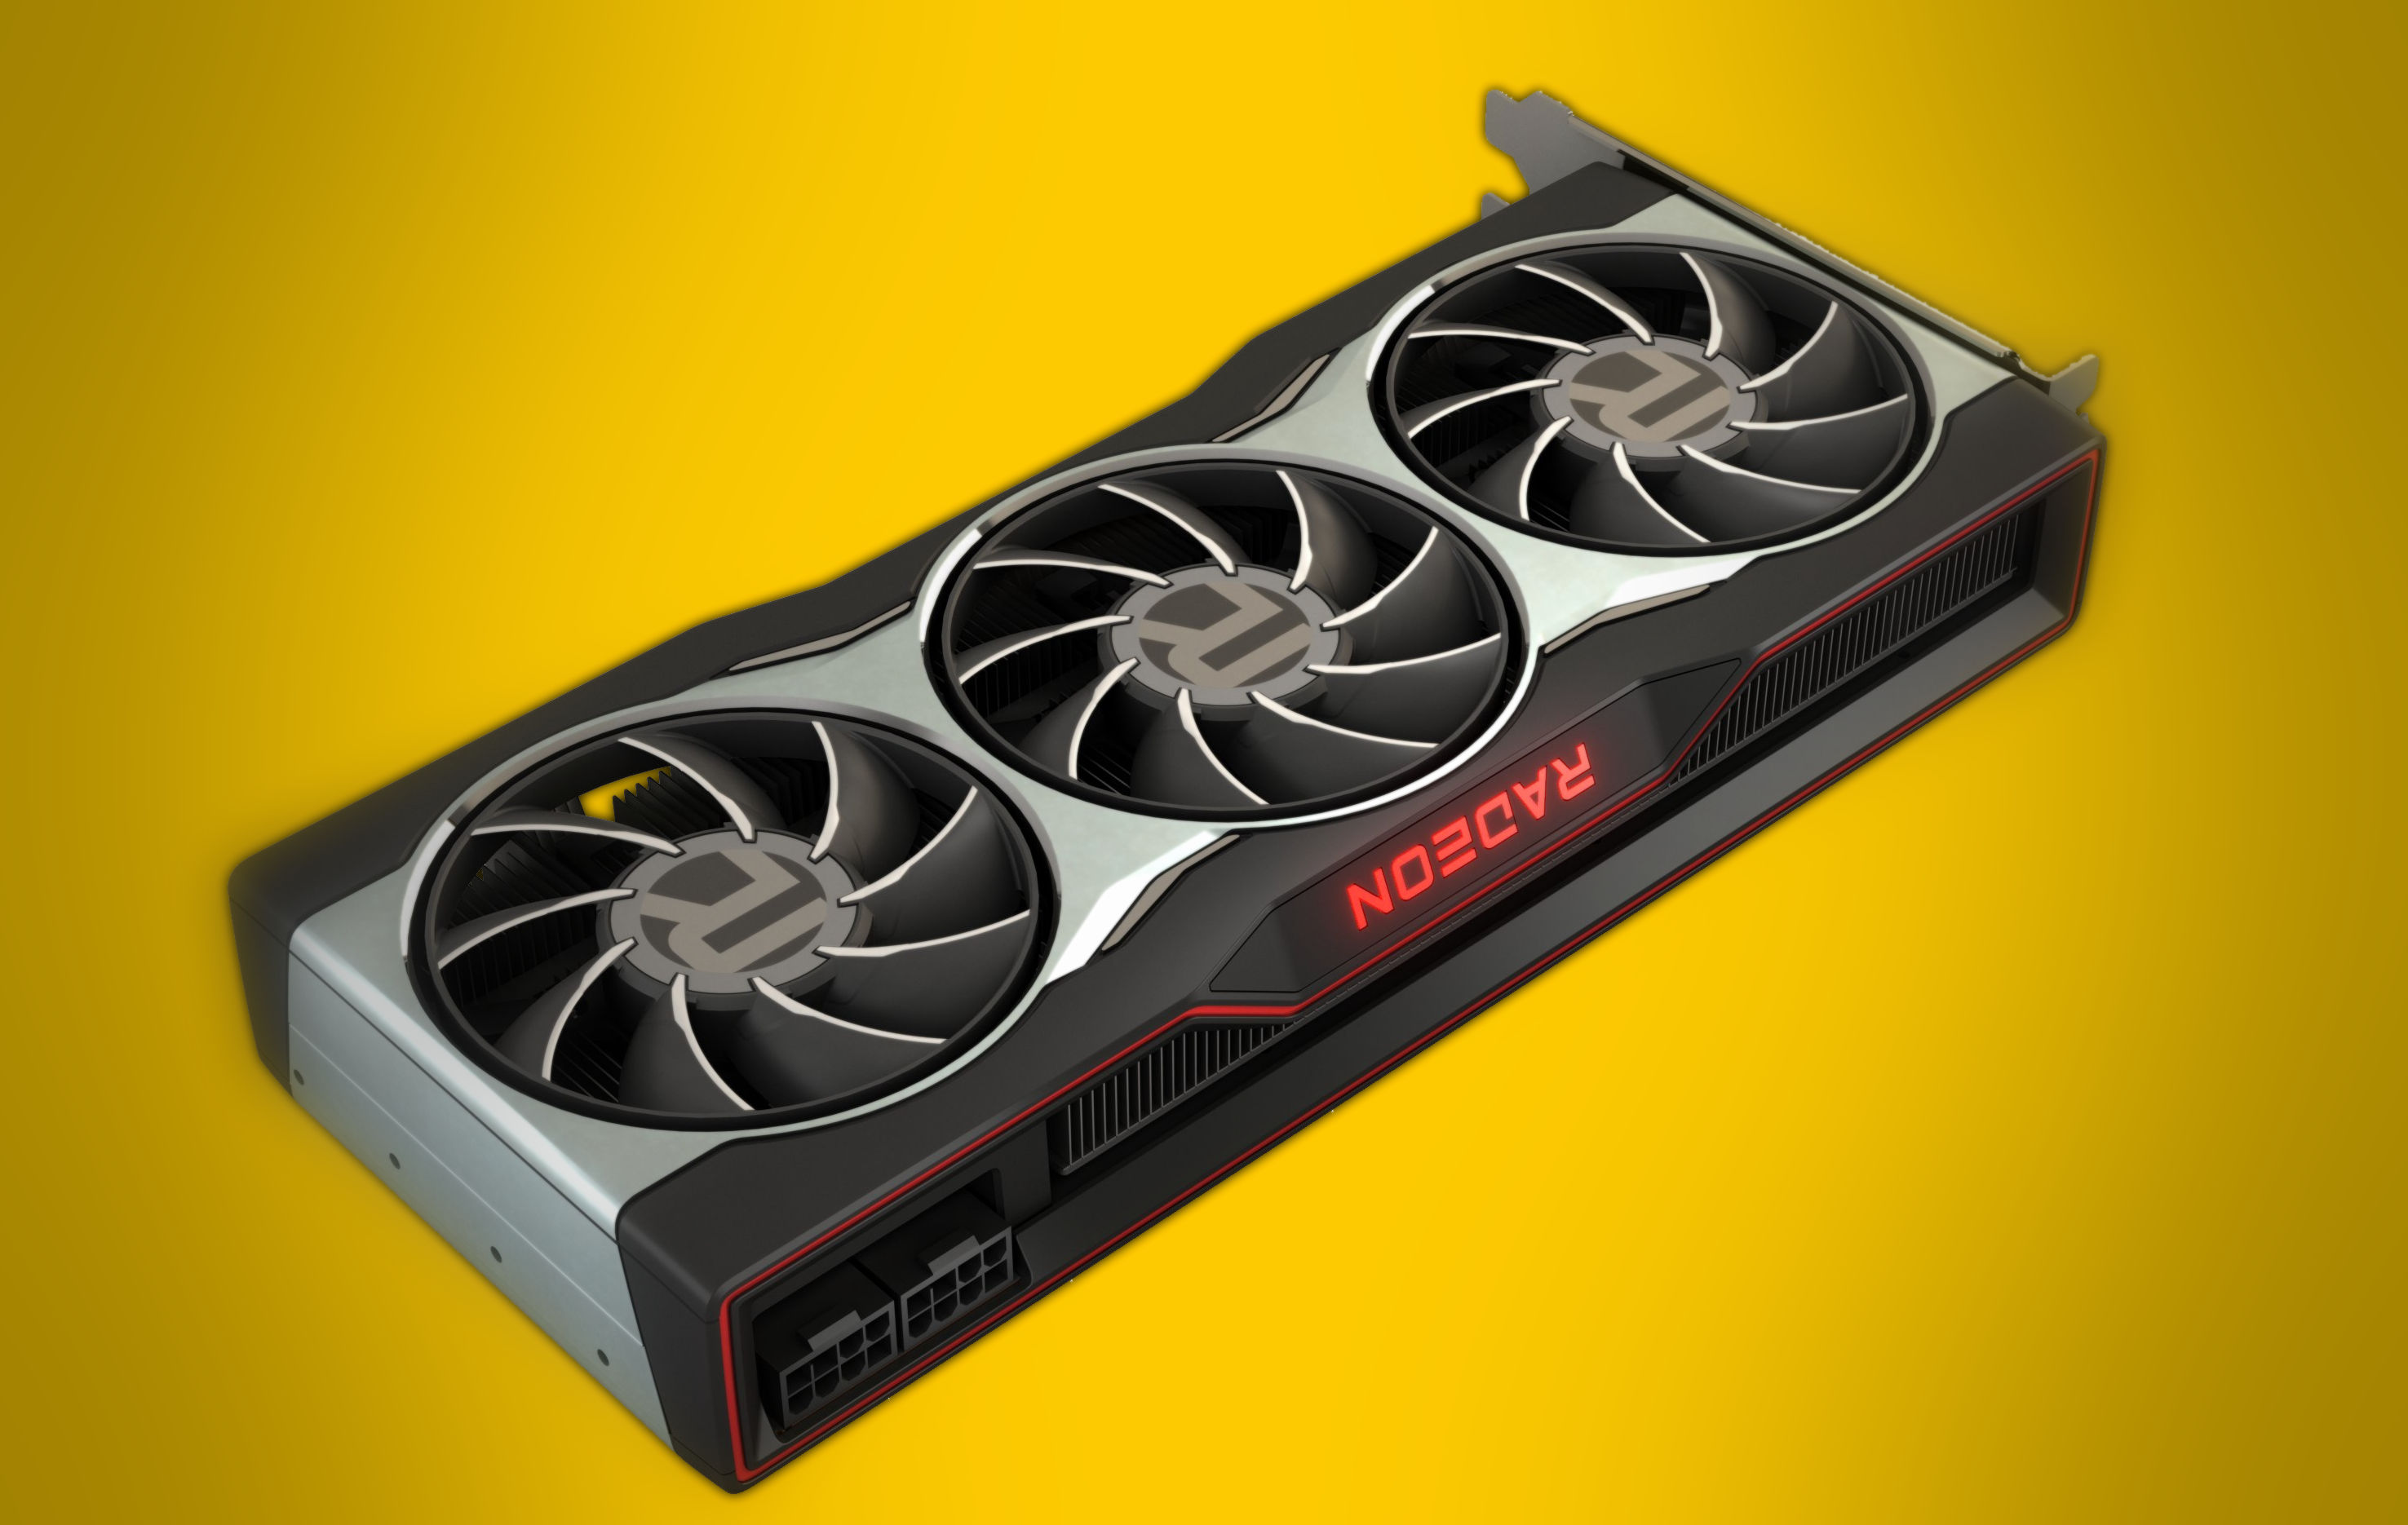 AMD Radeon RX 6900 XT, RX 6800 XT and RX 6800 reference desings are being discontinued – VideoCardz.com